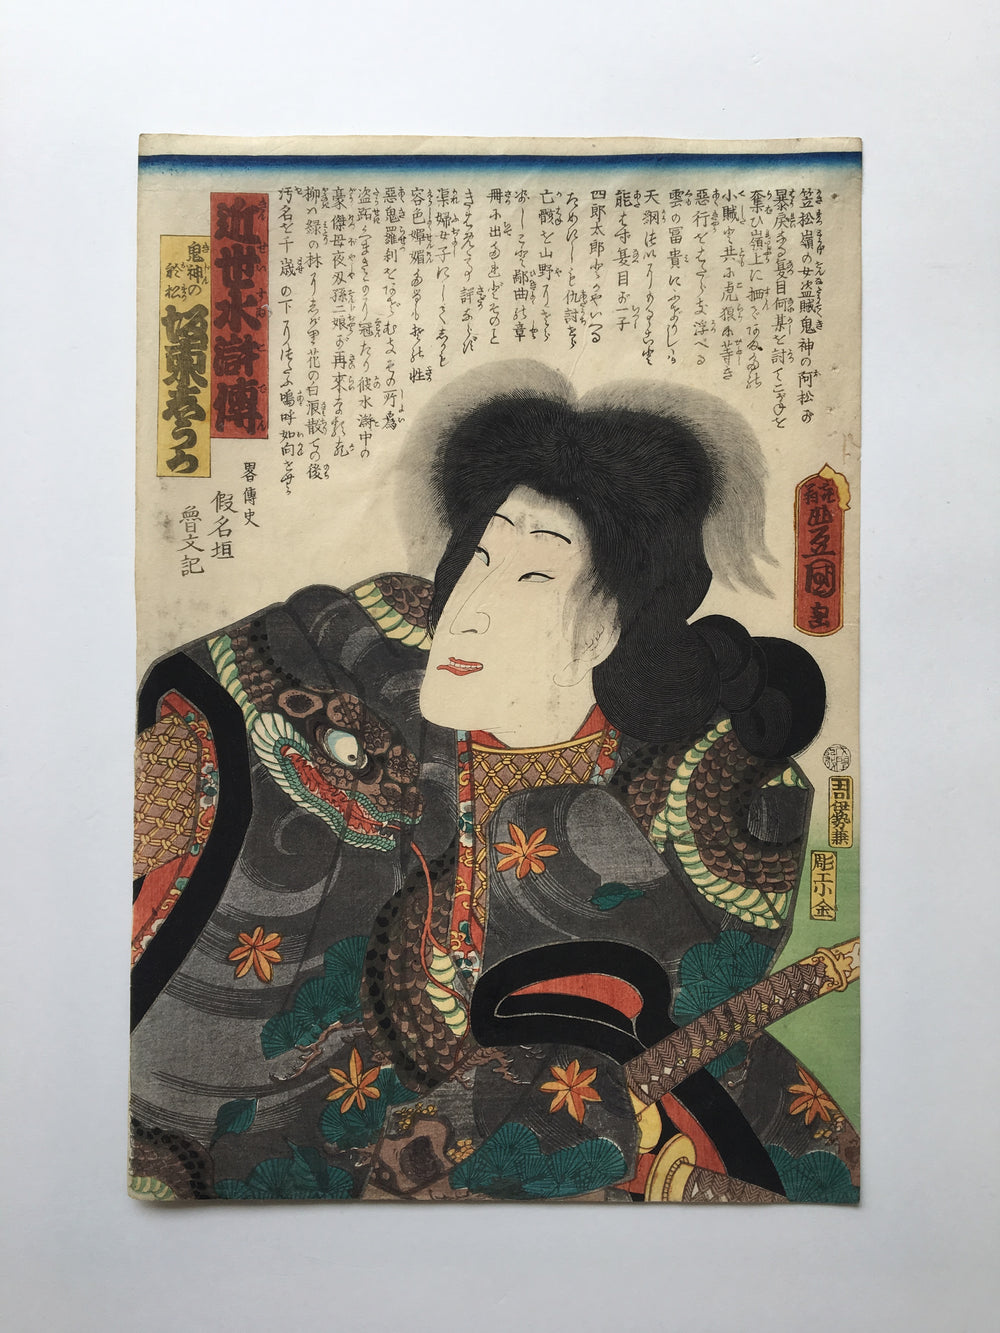 Modern Version of Outlaws of the Marsh / Omatsu the Demon interpreted by Shuika Bandou (Utagawa Kunisada (Toyokuni III), 1862)